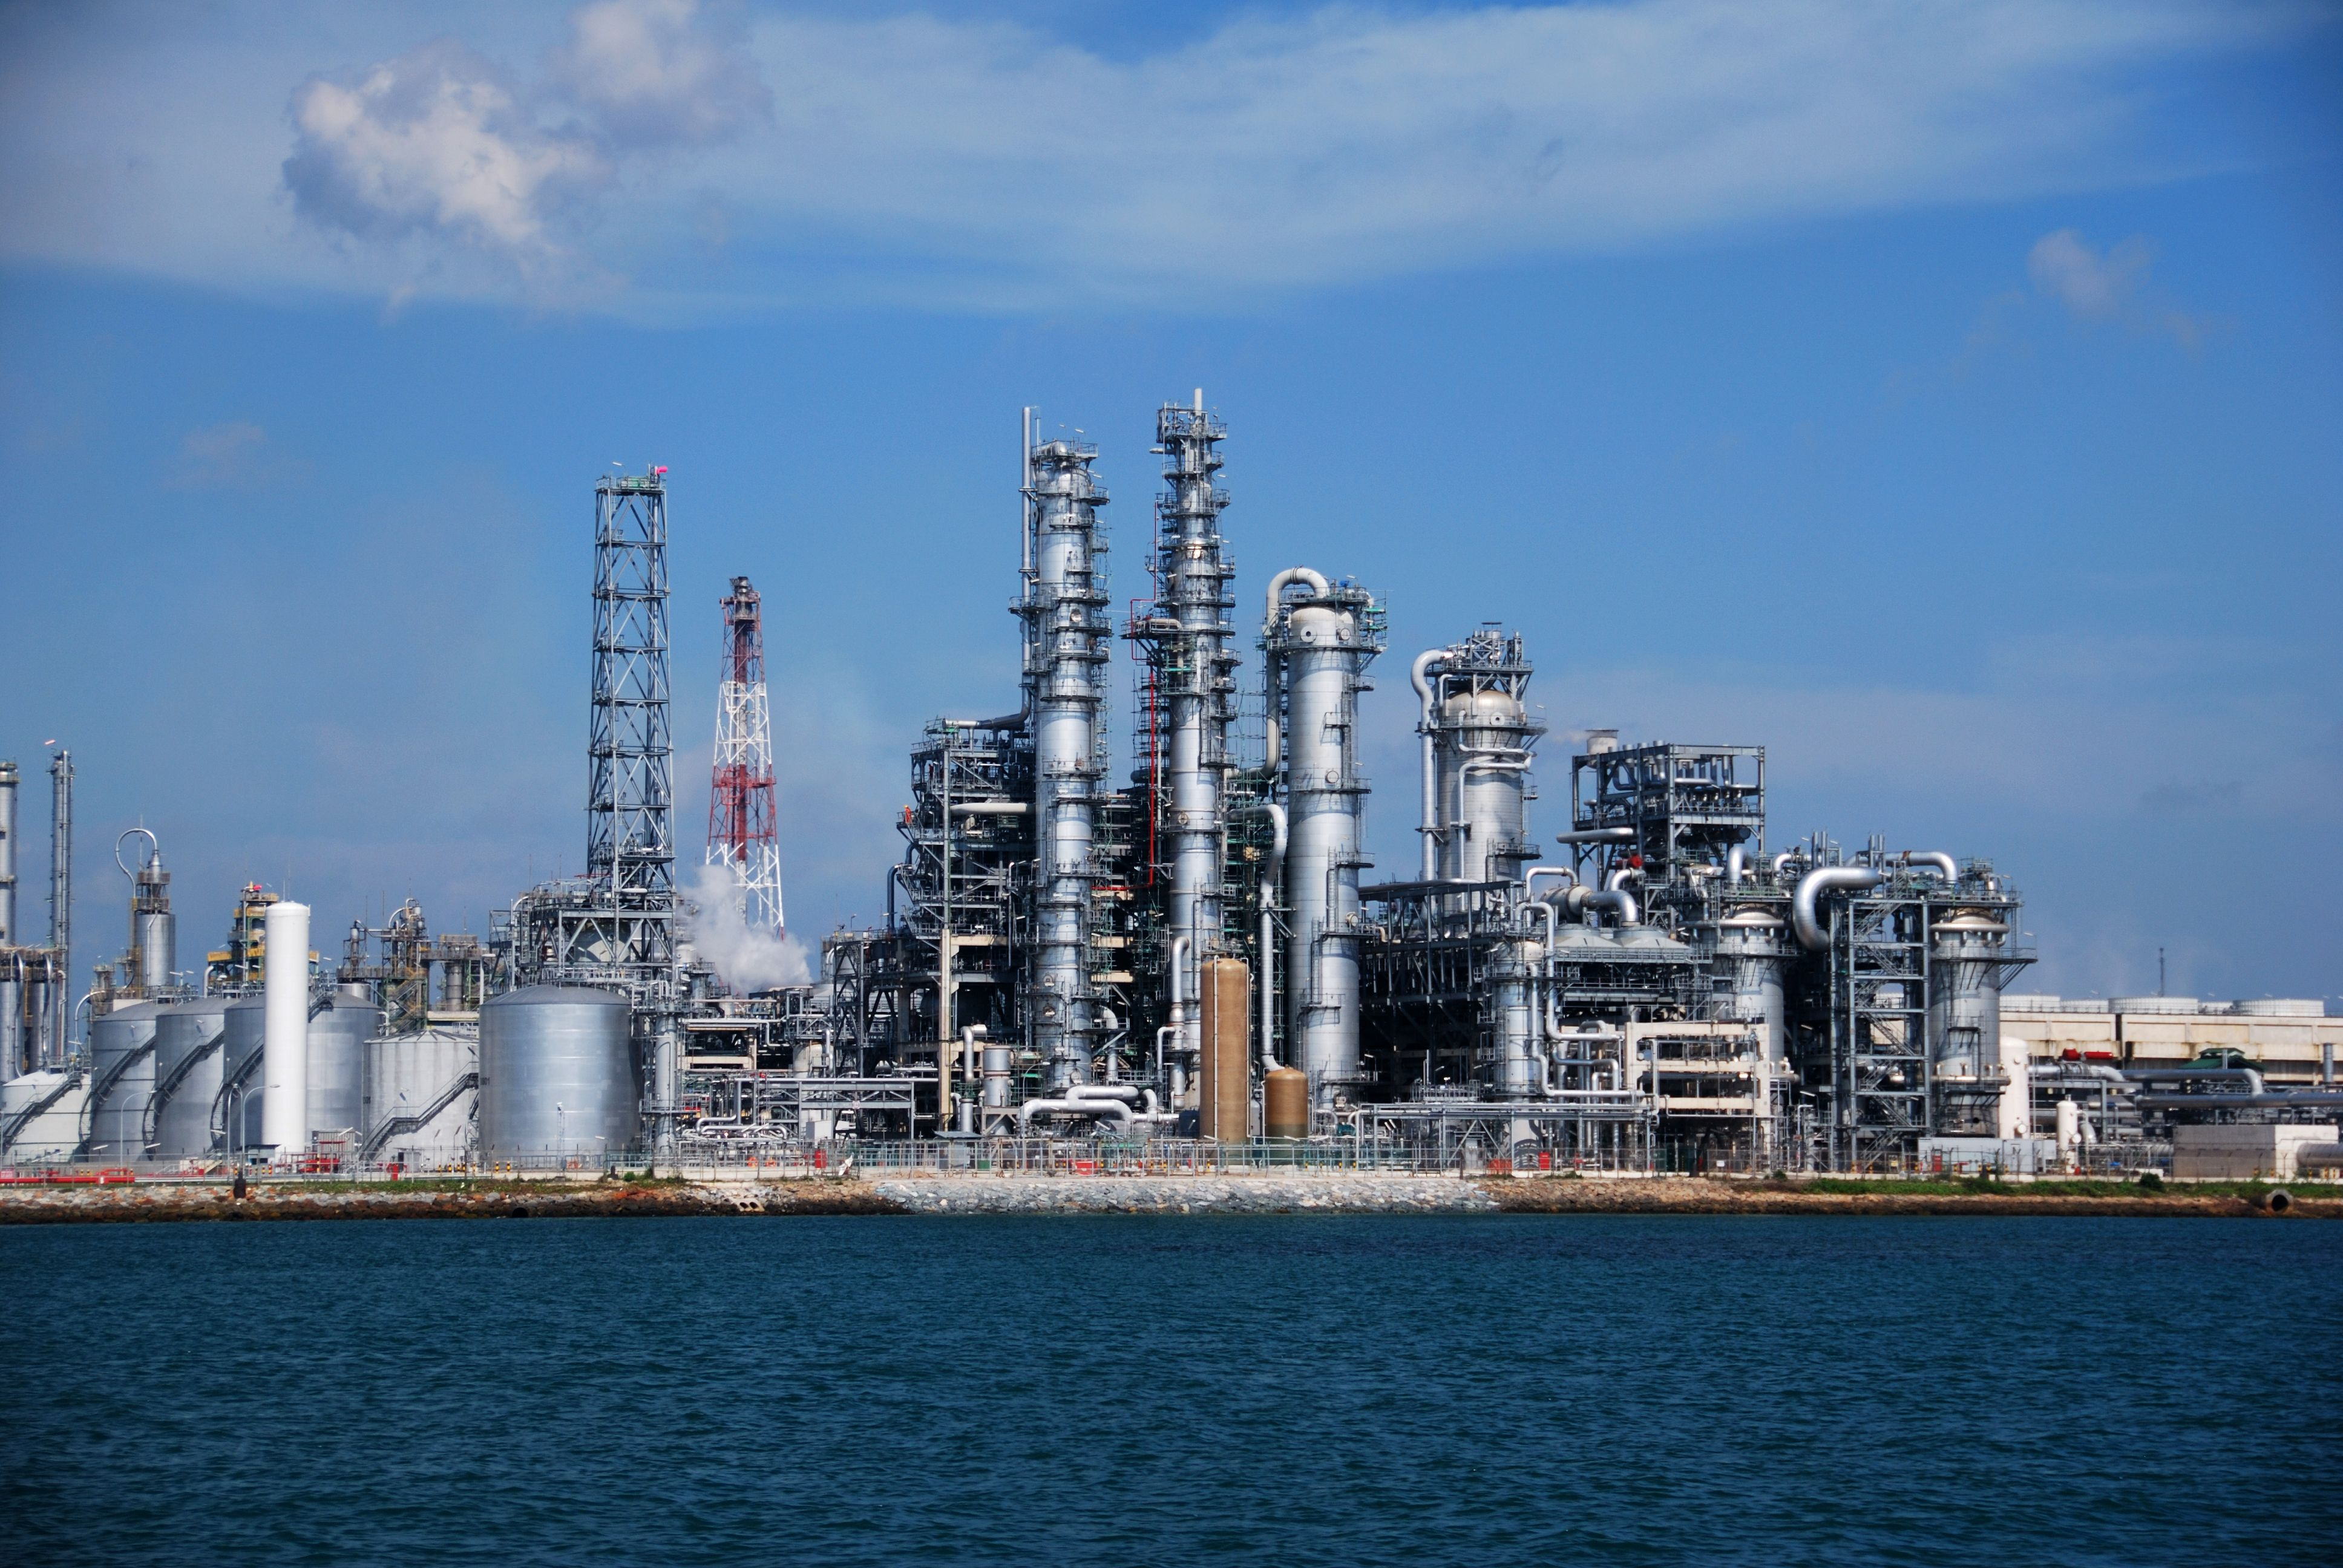 Image shows the a petrochemical operation on an industrial island